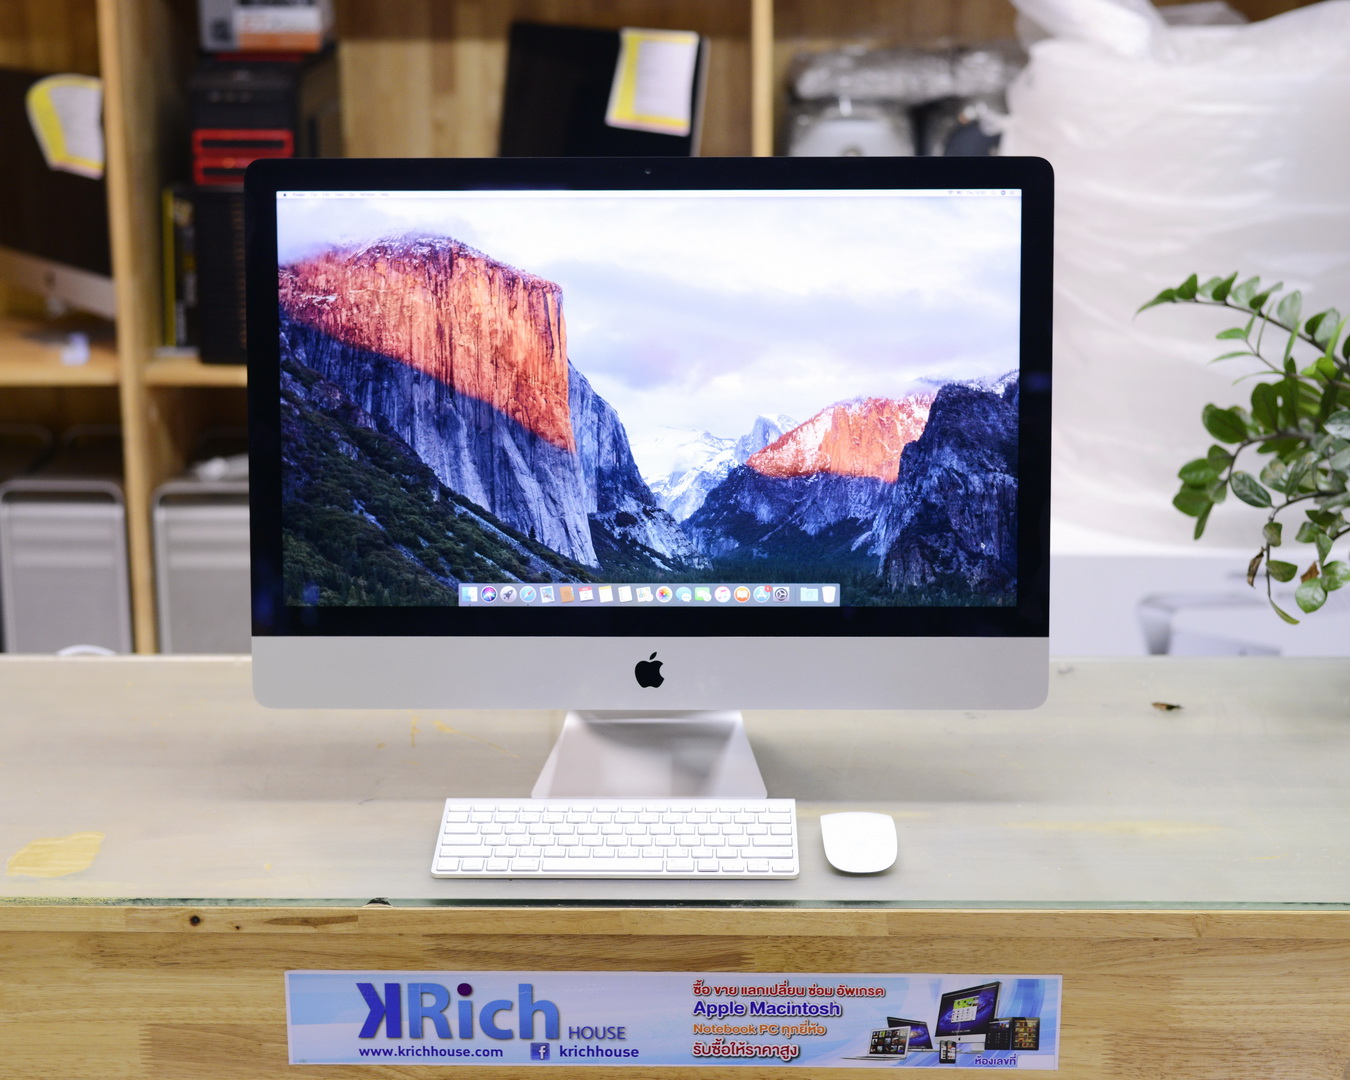 iMac (27-inch, Late 2012) Quad-Core i5 2.9GHz RAM 8GB HDD 1TB - Nvidia GeForce GTX660M 512MB